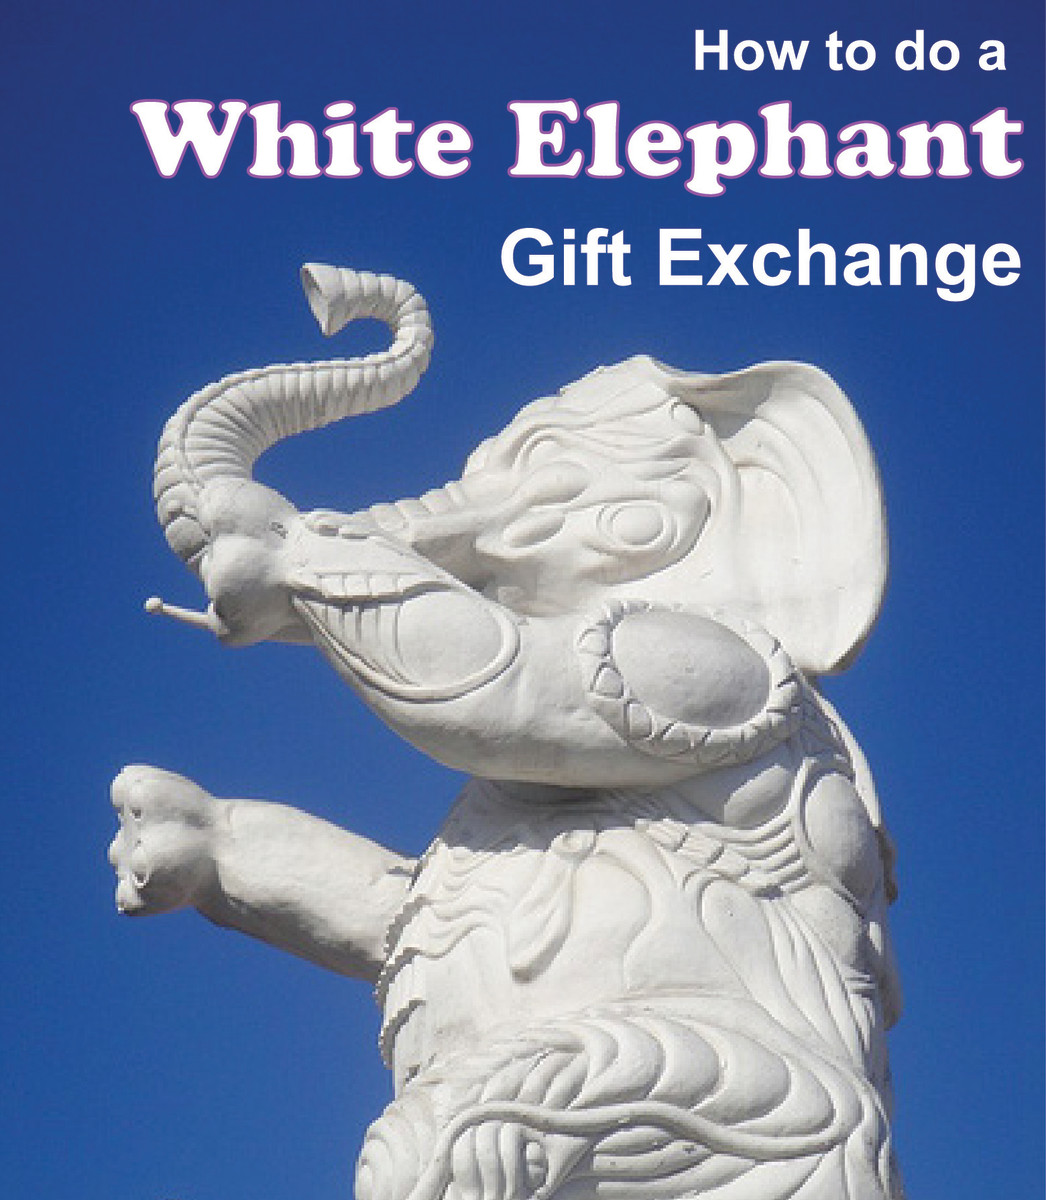 White Elephant Gift Exchange for a Fun and Frugal Christmas Party